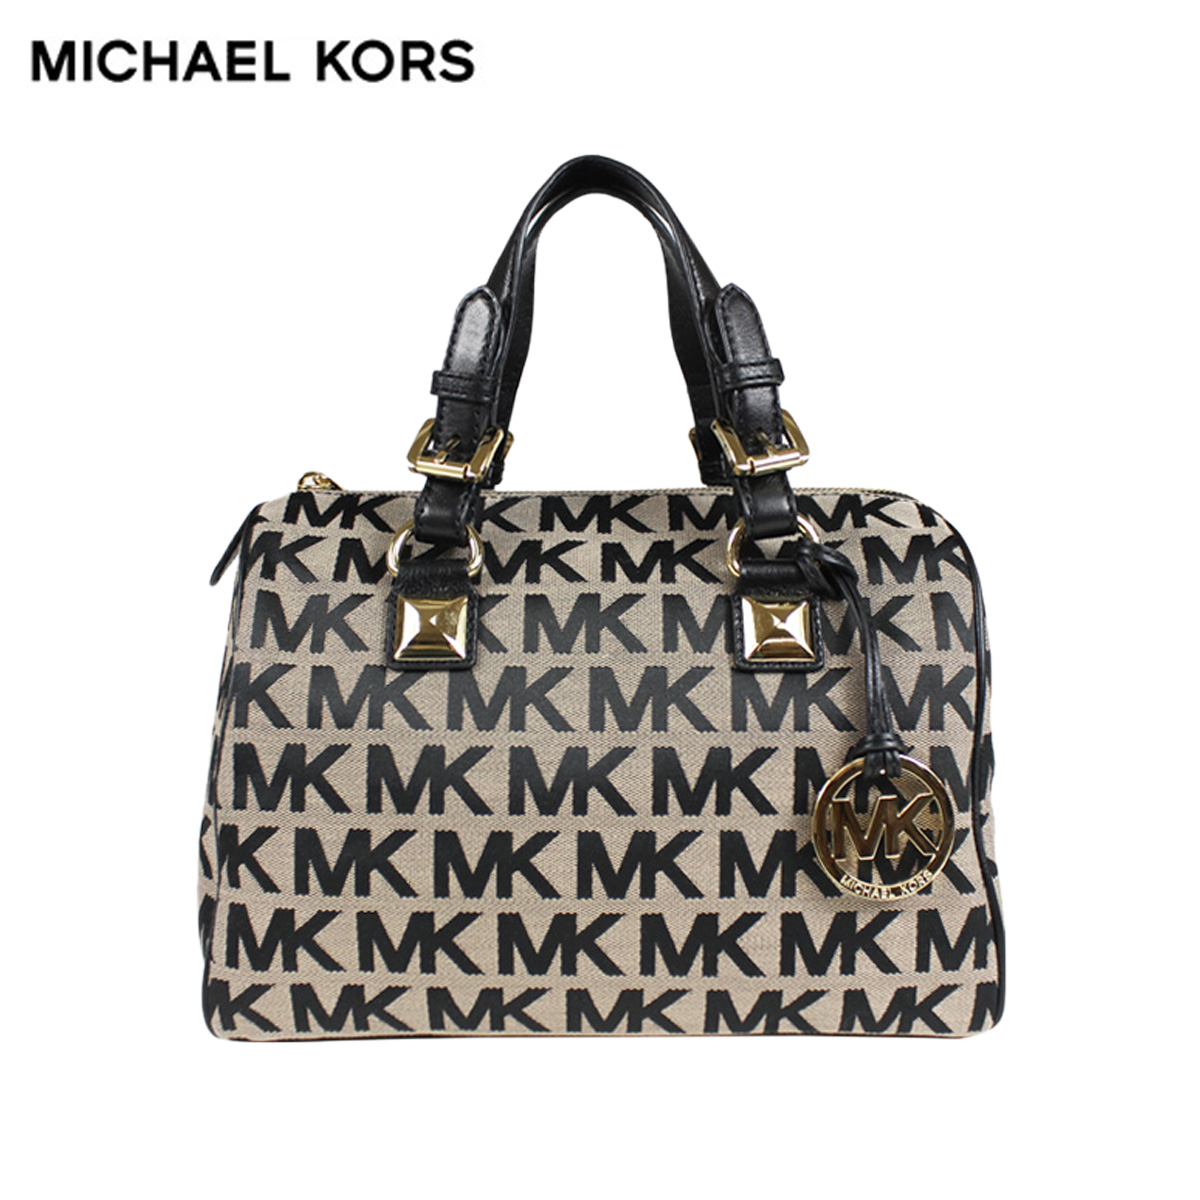 b850799fb121 Whats up Sports: MICHAEL KORS Michael Kors bags handbags Boston bag ...